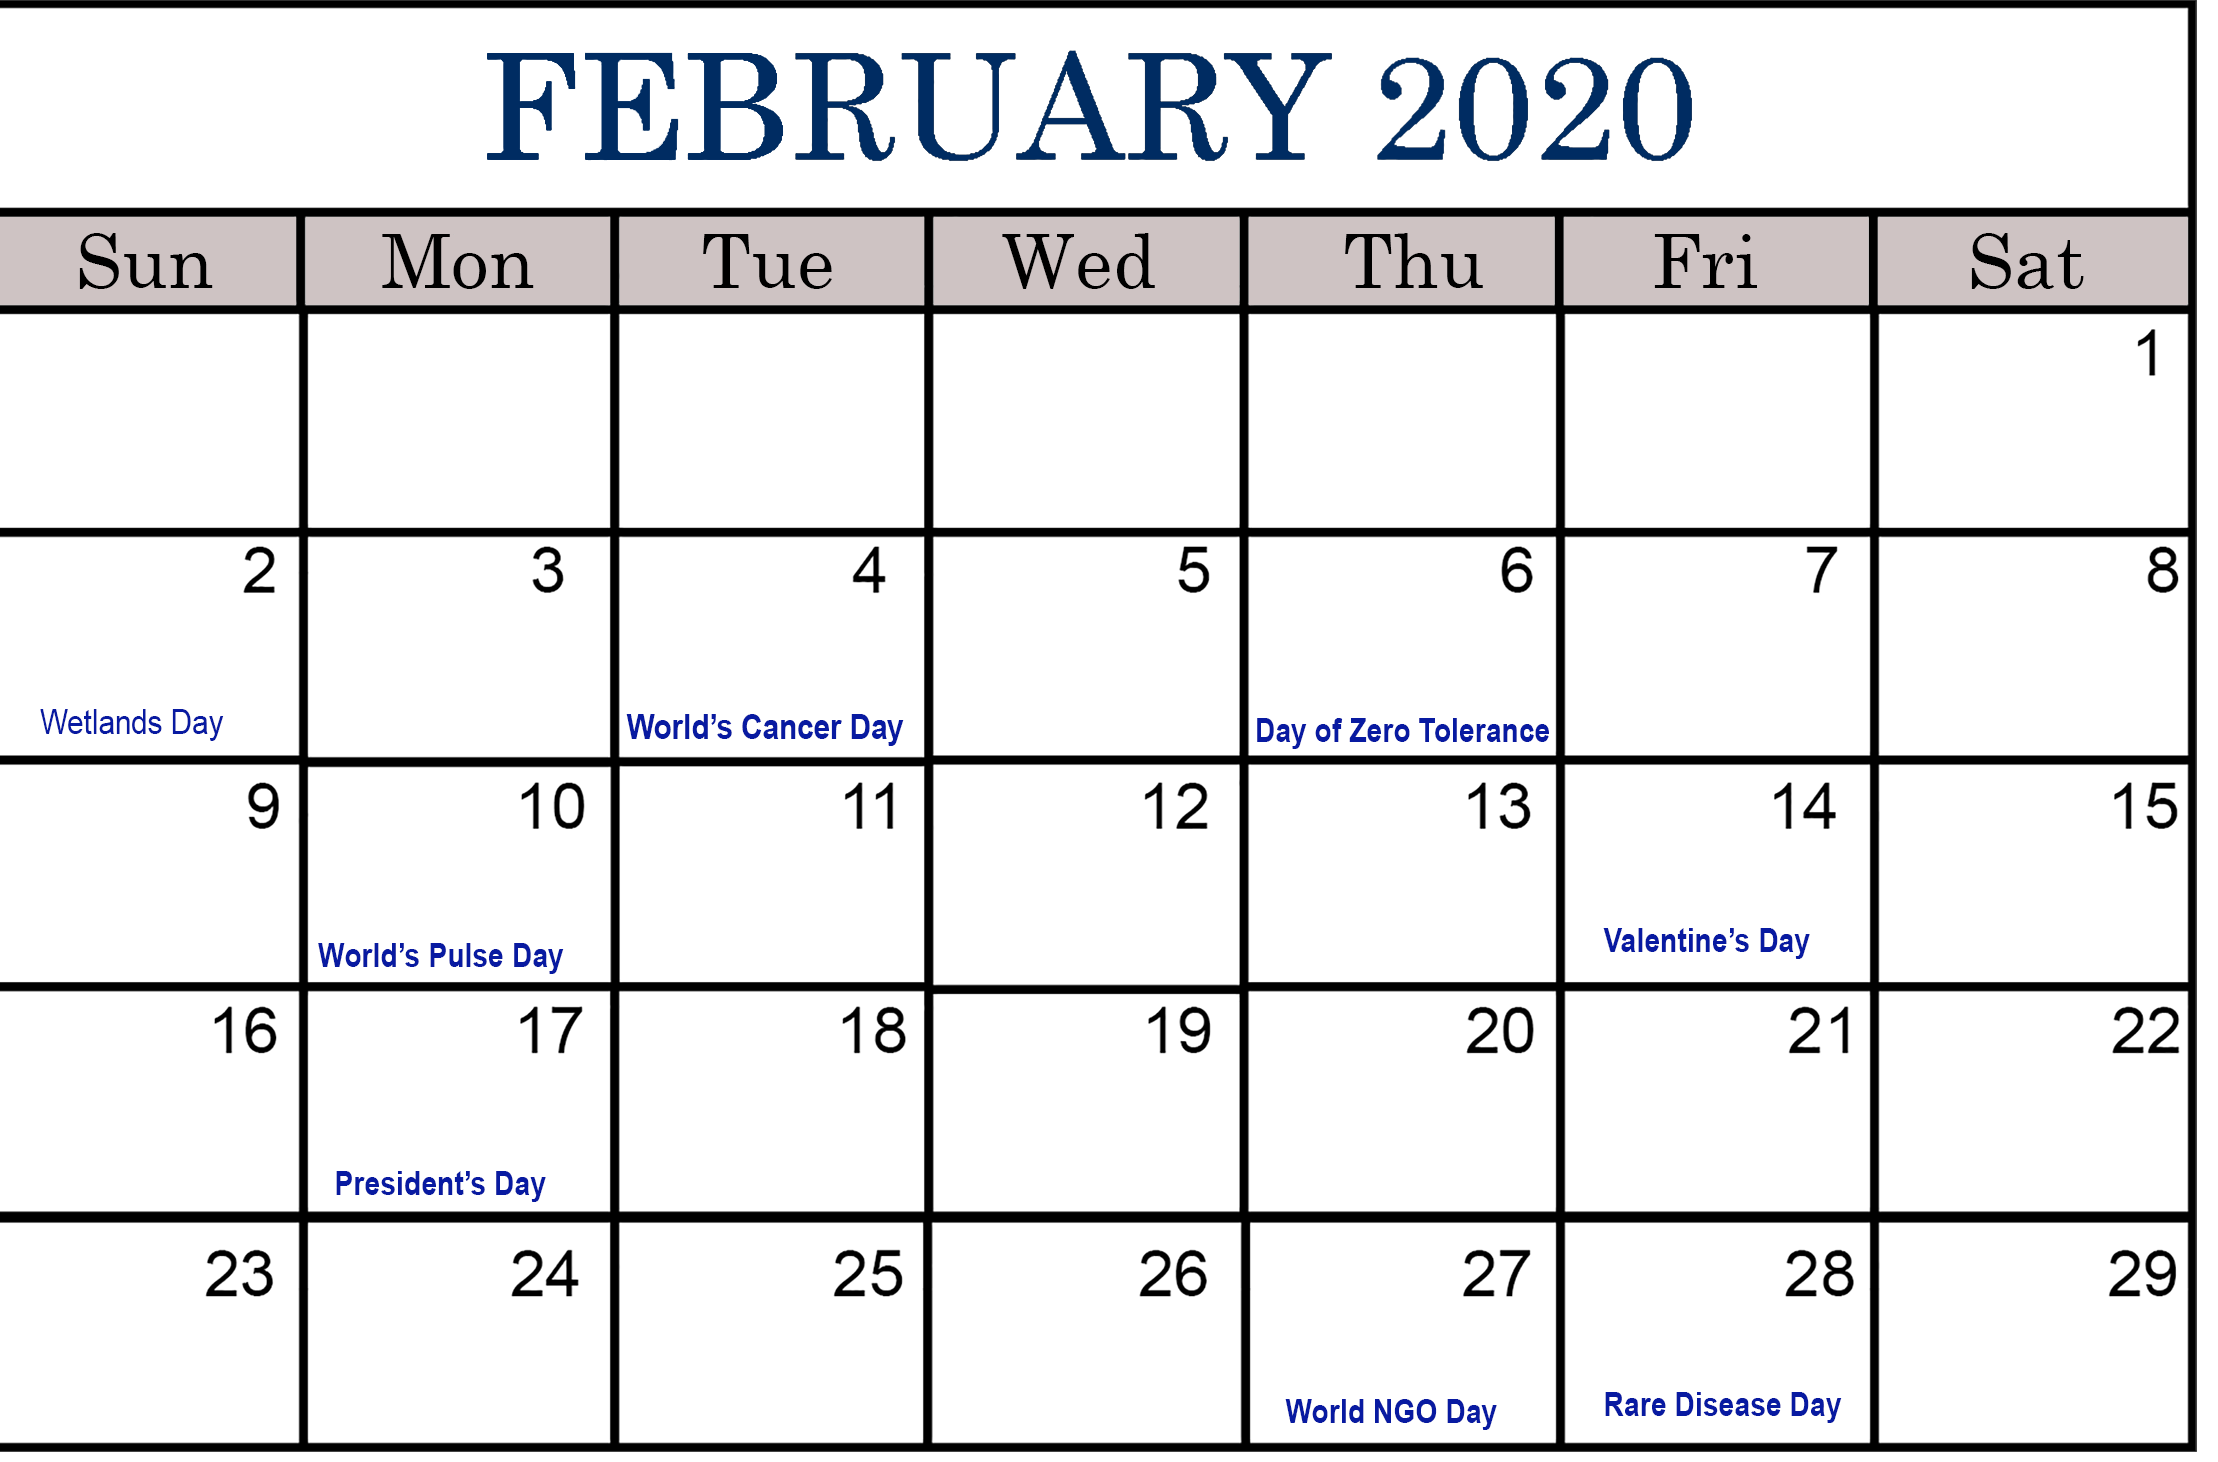 Events Calendar 2020.February 2020 Calendar Events Kozen Jasonkellyphoto Co